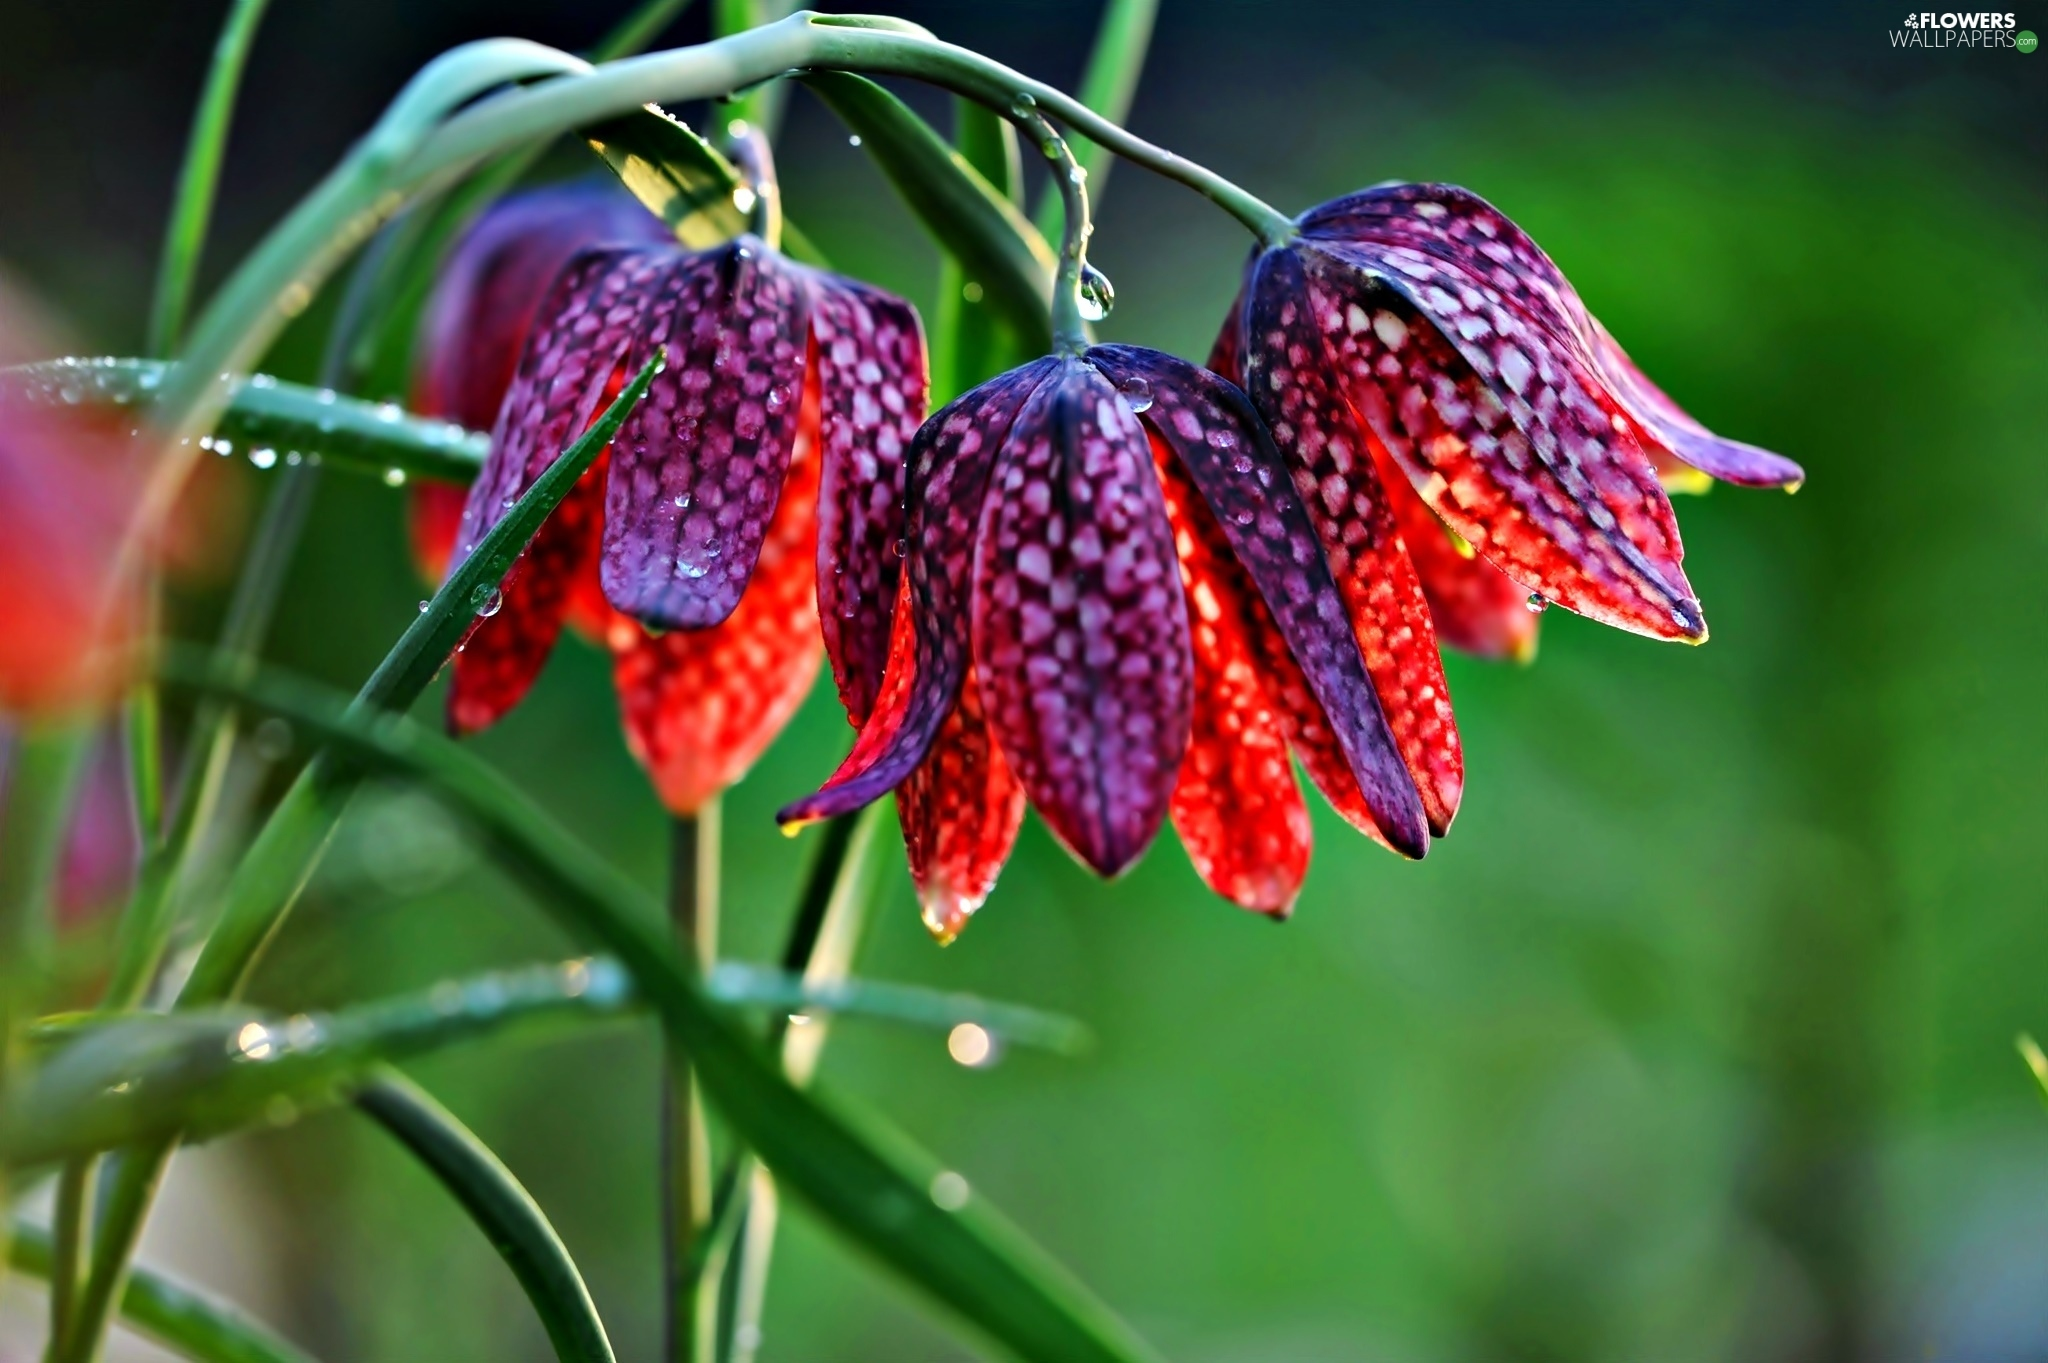 flash, ligh, drops, sun, Fritillaria meleagris, luminosity, dew